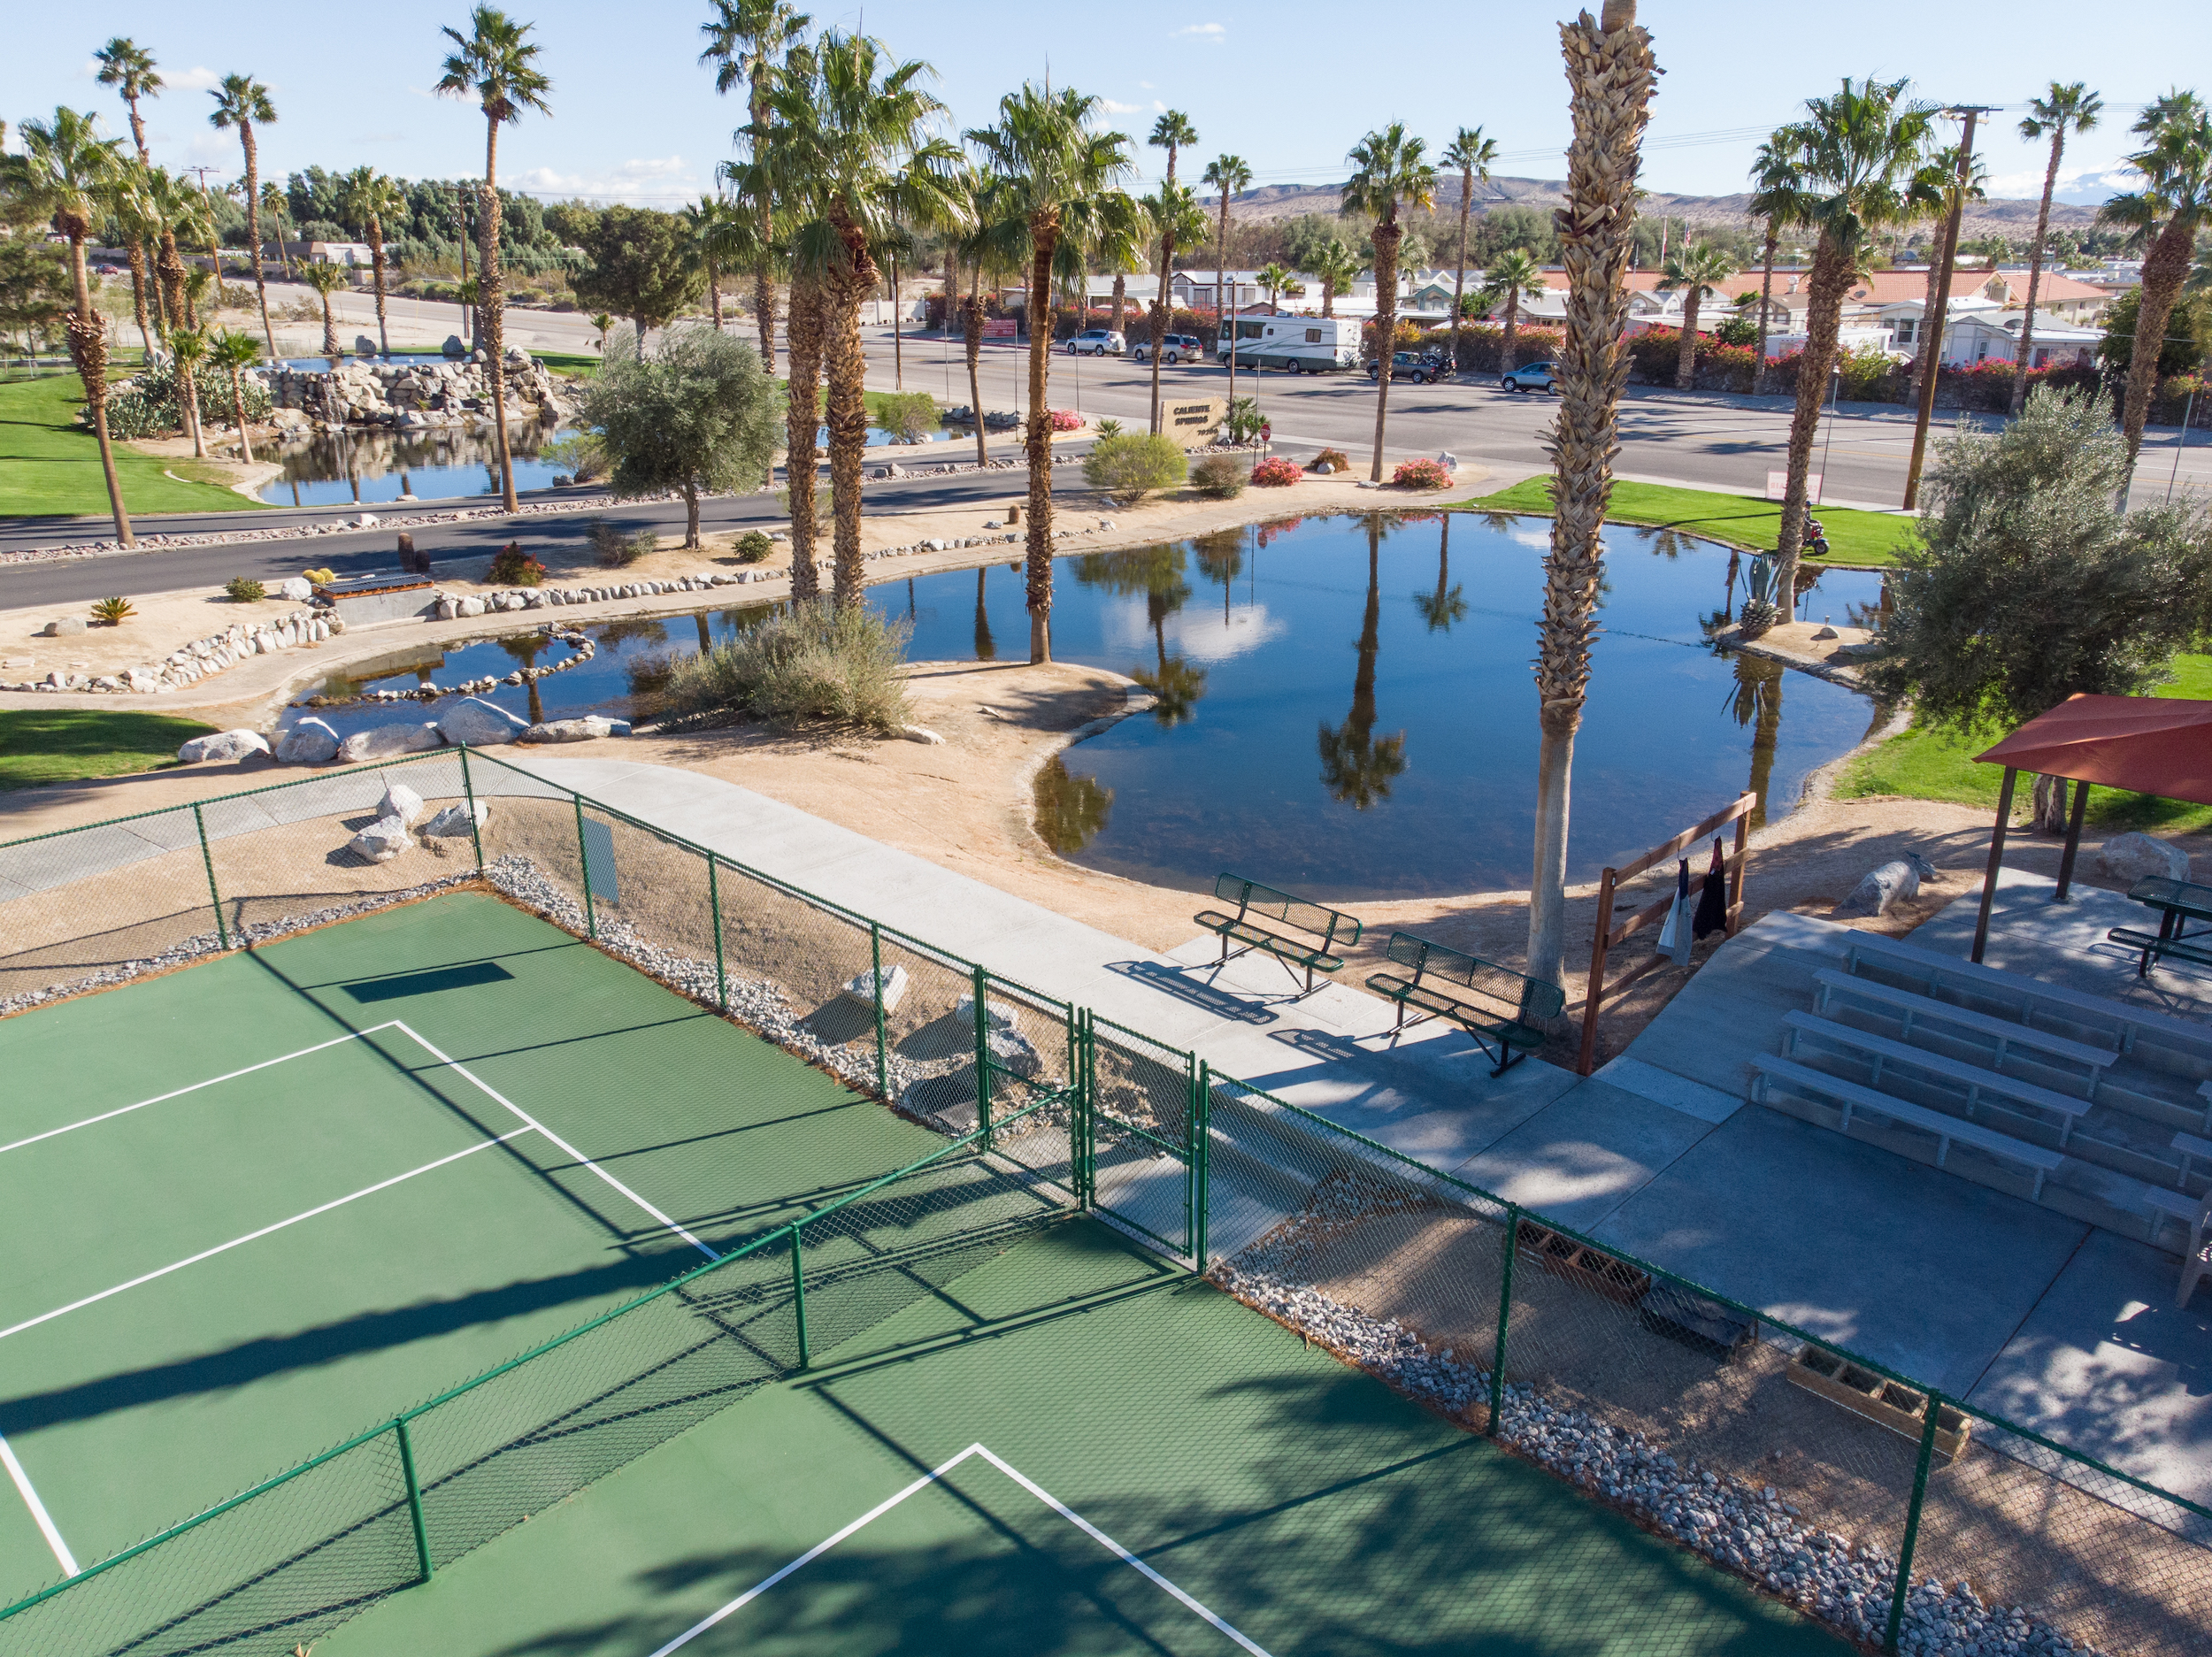 caliente-pickleball-courts-with-pond.jpg